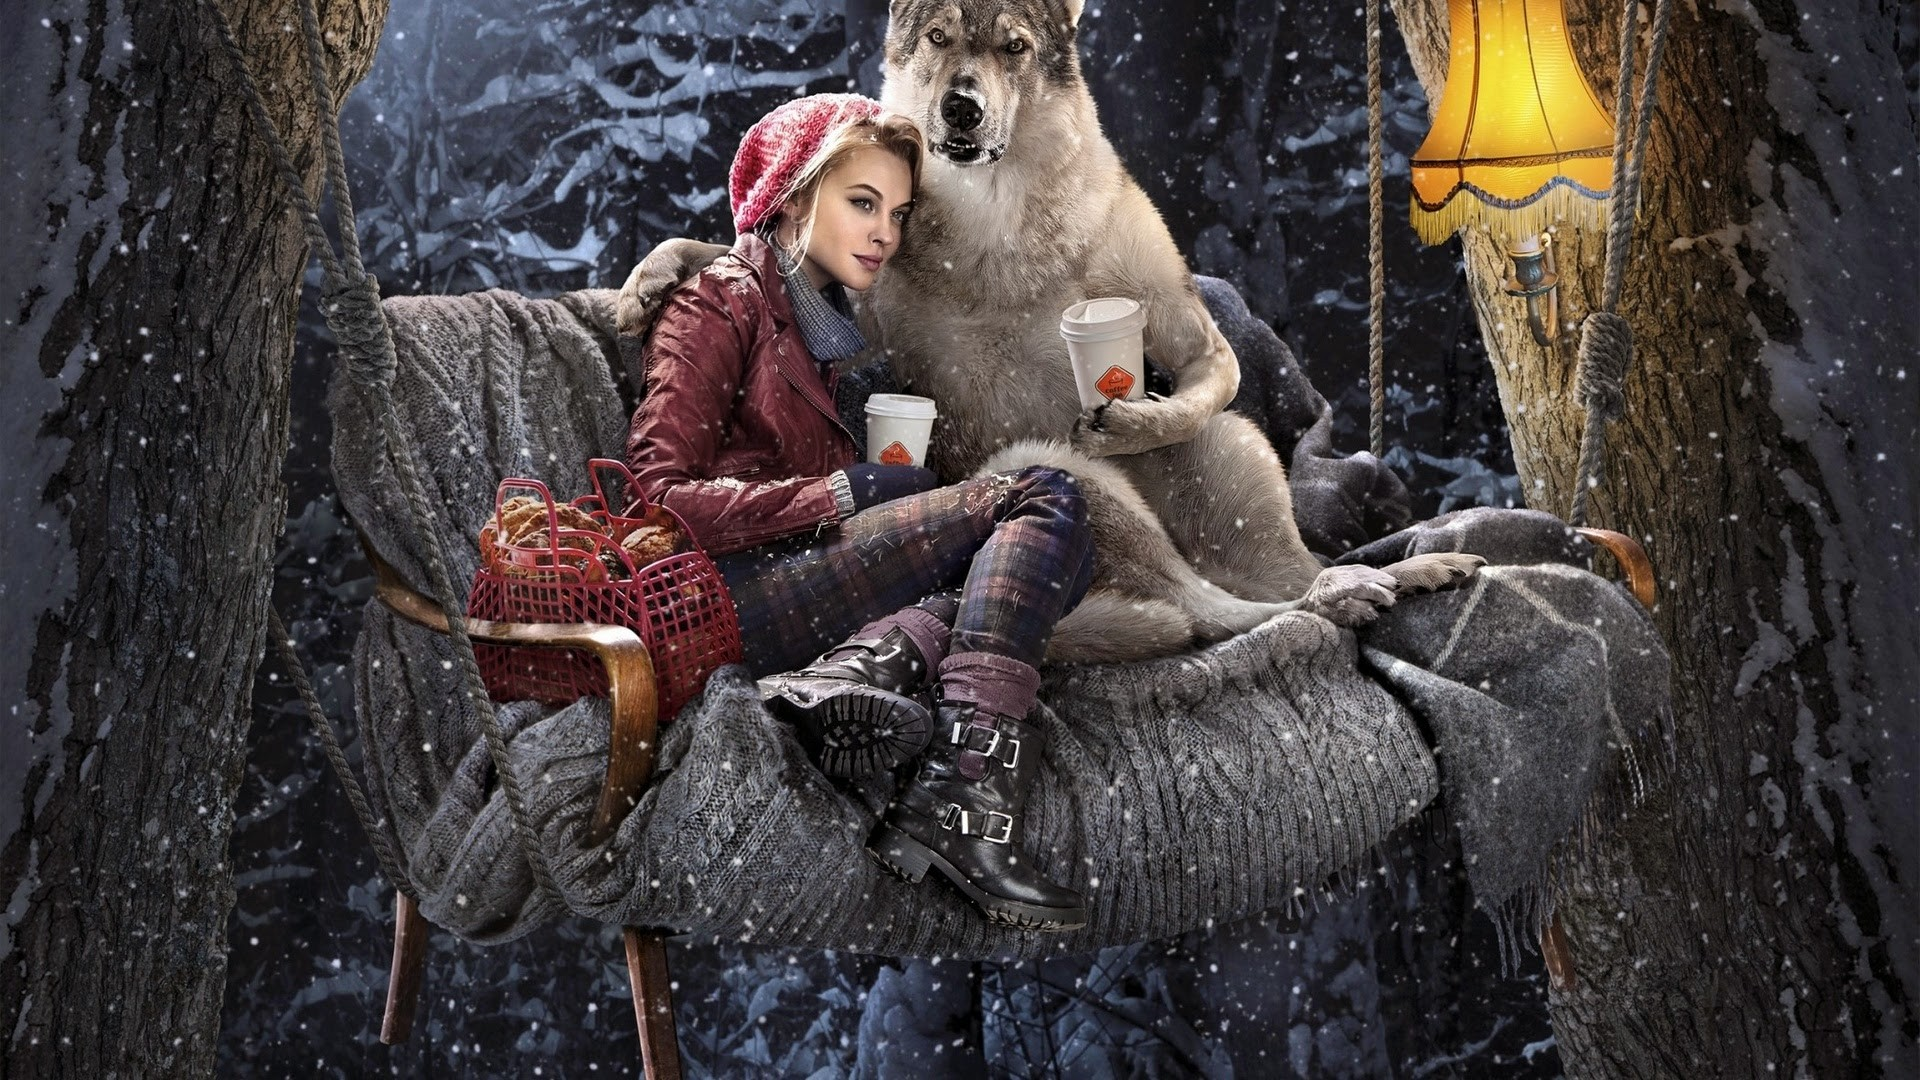 ... , Holidays: Red Riding Hood, wolf, drink coffee, forest, night, tree